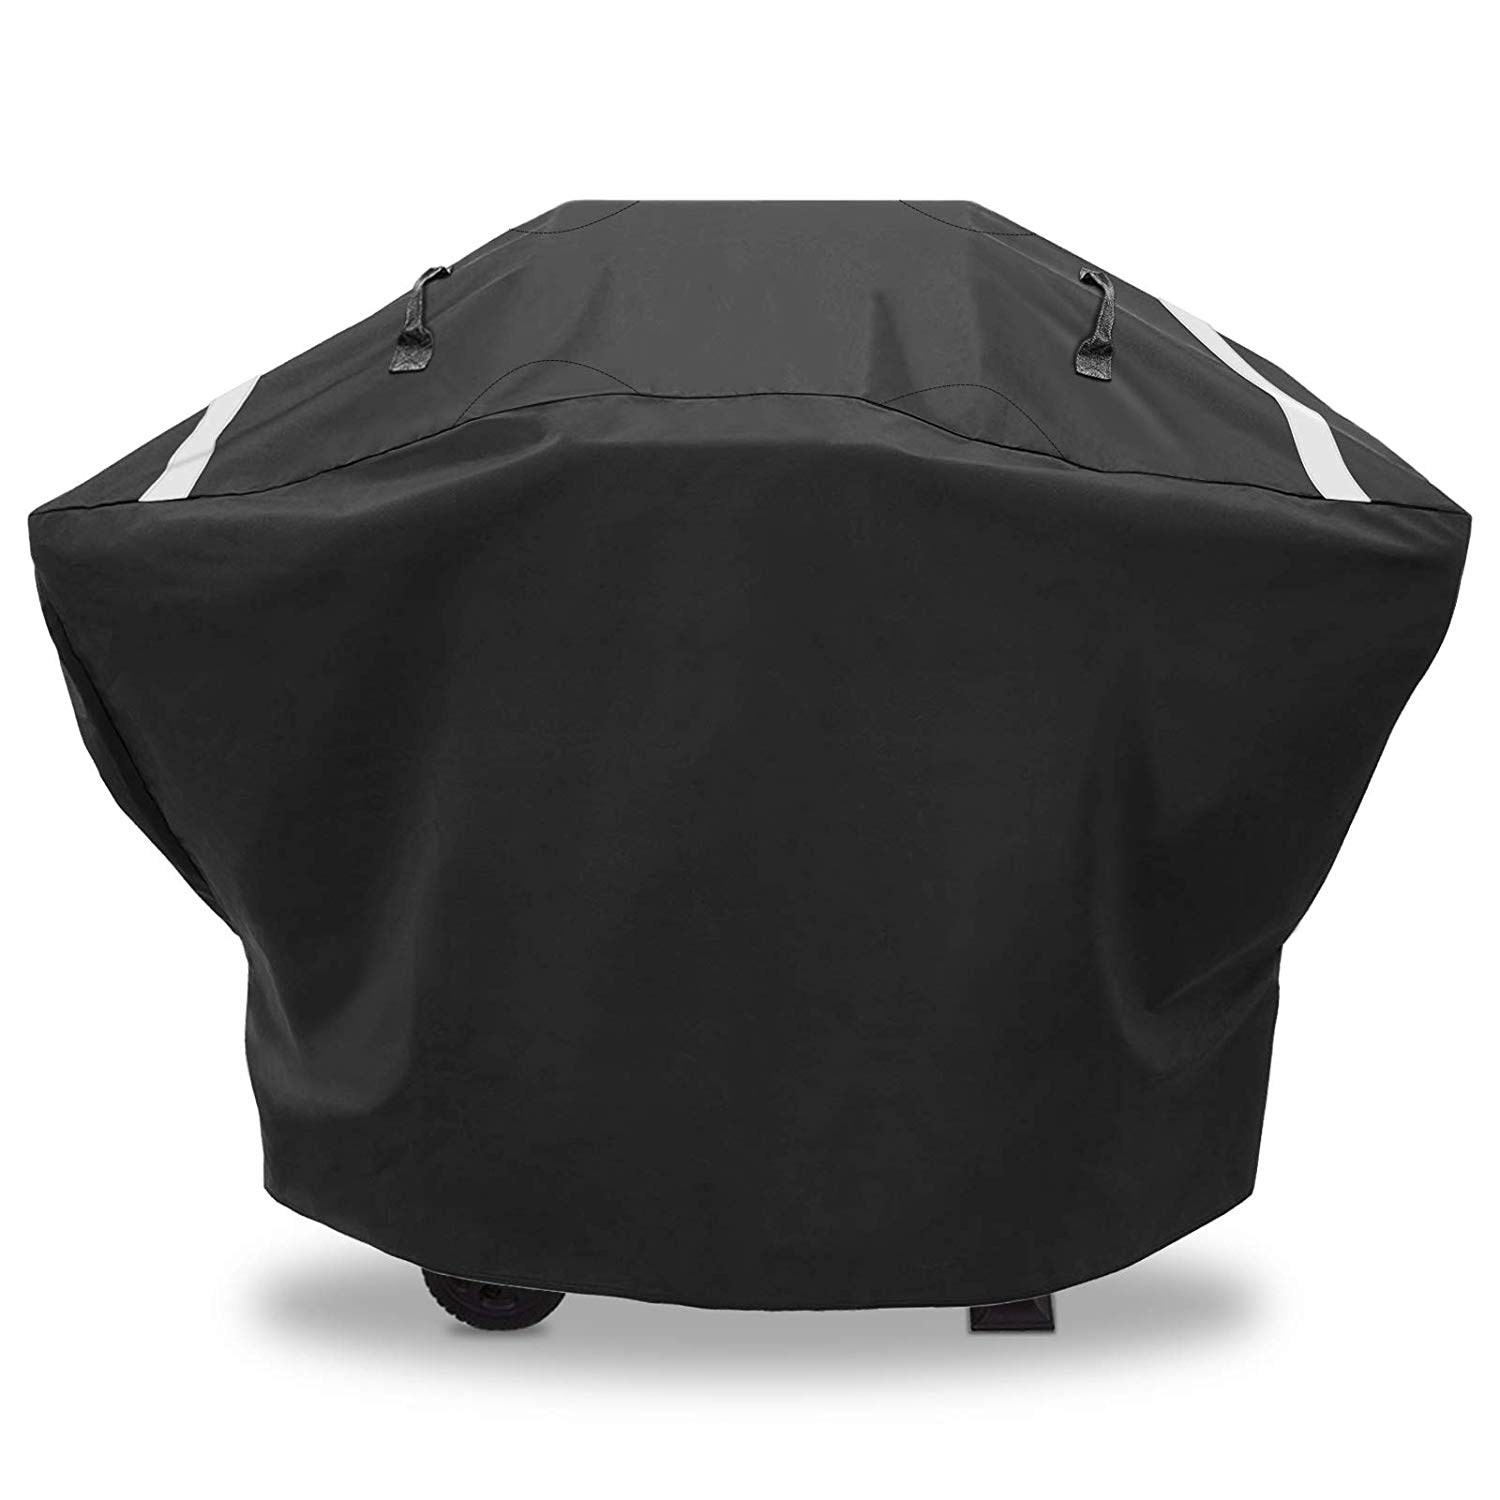 Hisencn Heavy Duty Waterproof 2-3 Burners Gas Grill Cover for Char-Broil Rip-Stop Grill Cover, up to 52 Inches Wide,UV Resistant